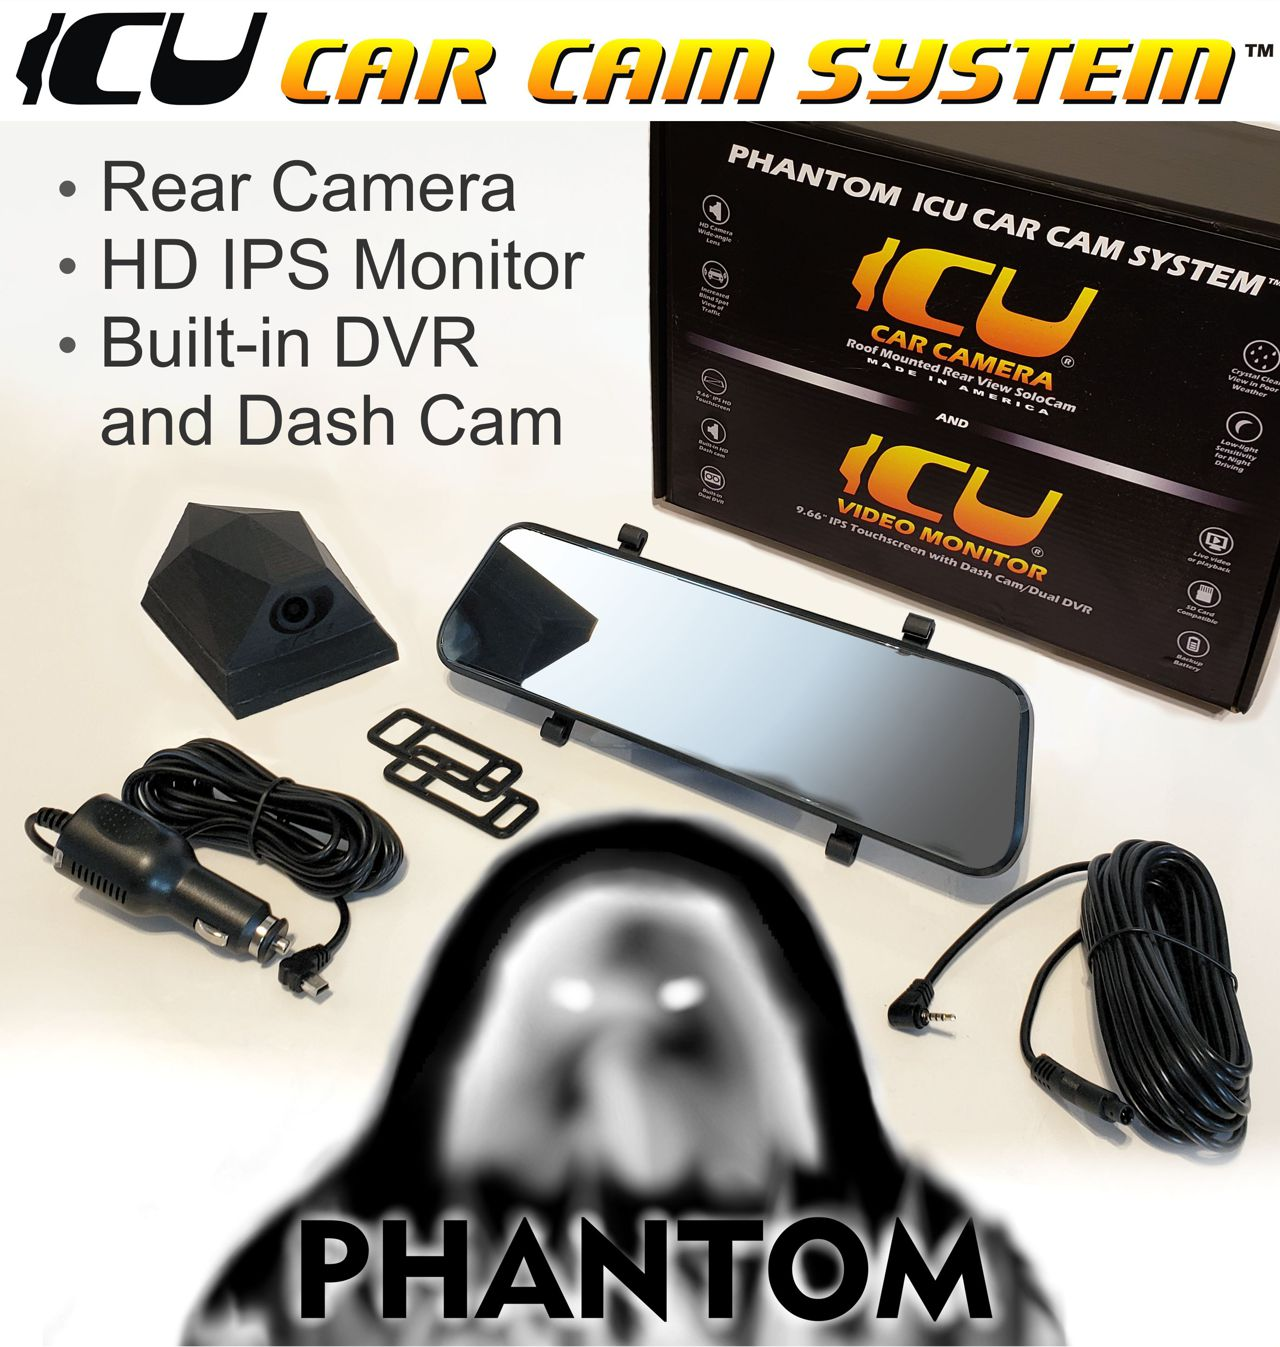 """The Phantom ICU Car Camera is a Full-time REAR VIEW Driving Camera and Video monitor, this is not a backup camera! Now you can see behind you and your blind spots when driving. Includes a Phantom ICU Car Camera, the ICU 9.66"""" Rear View HD Touchscreen Video Monitor with built-in dashcam/dvr. cigarette lighter power adapter (3.5m), and silicone monitor mounting straps, and camera cable (6m)."""